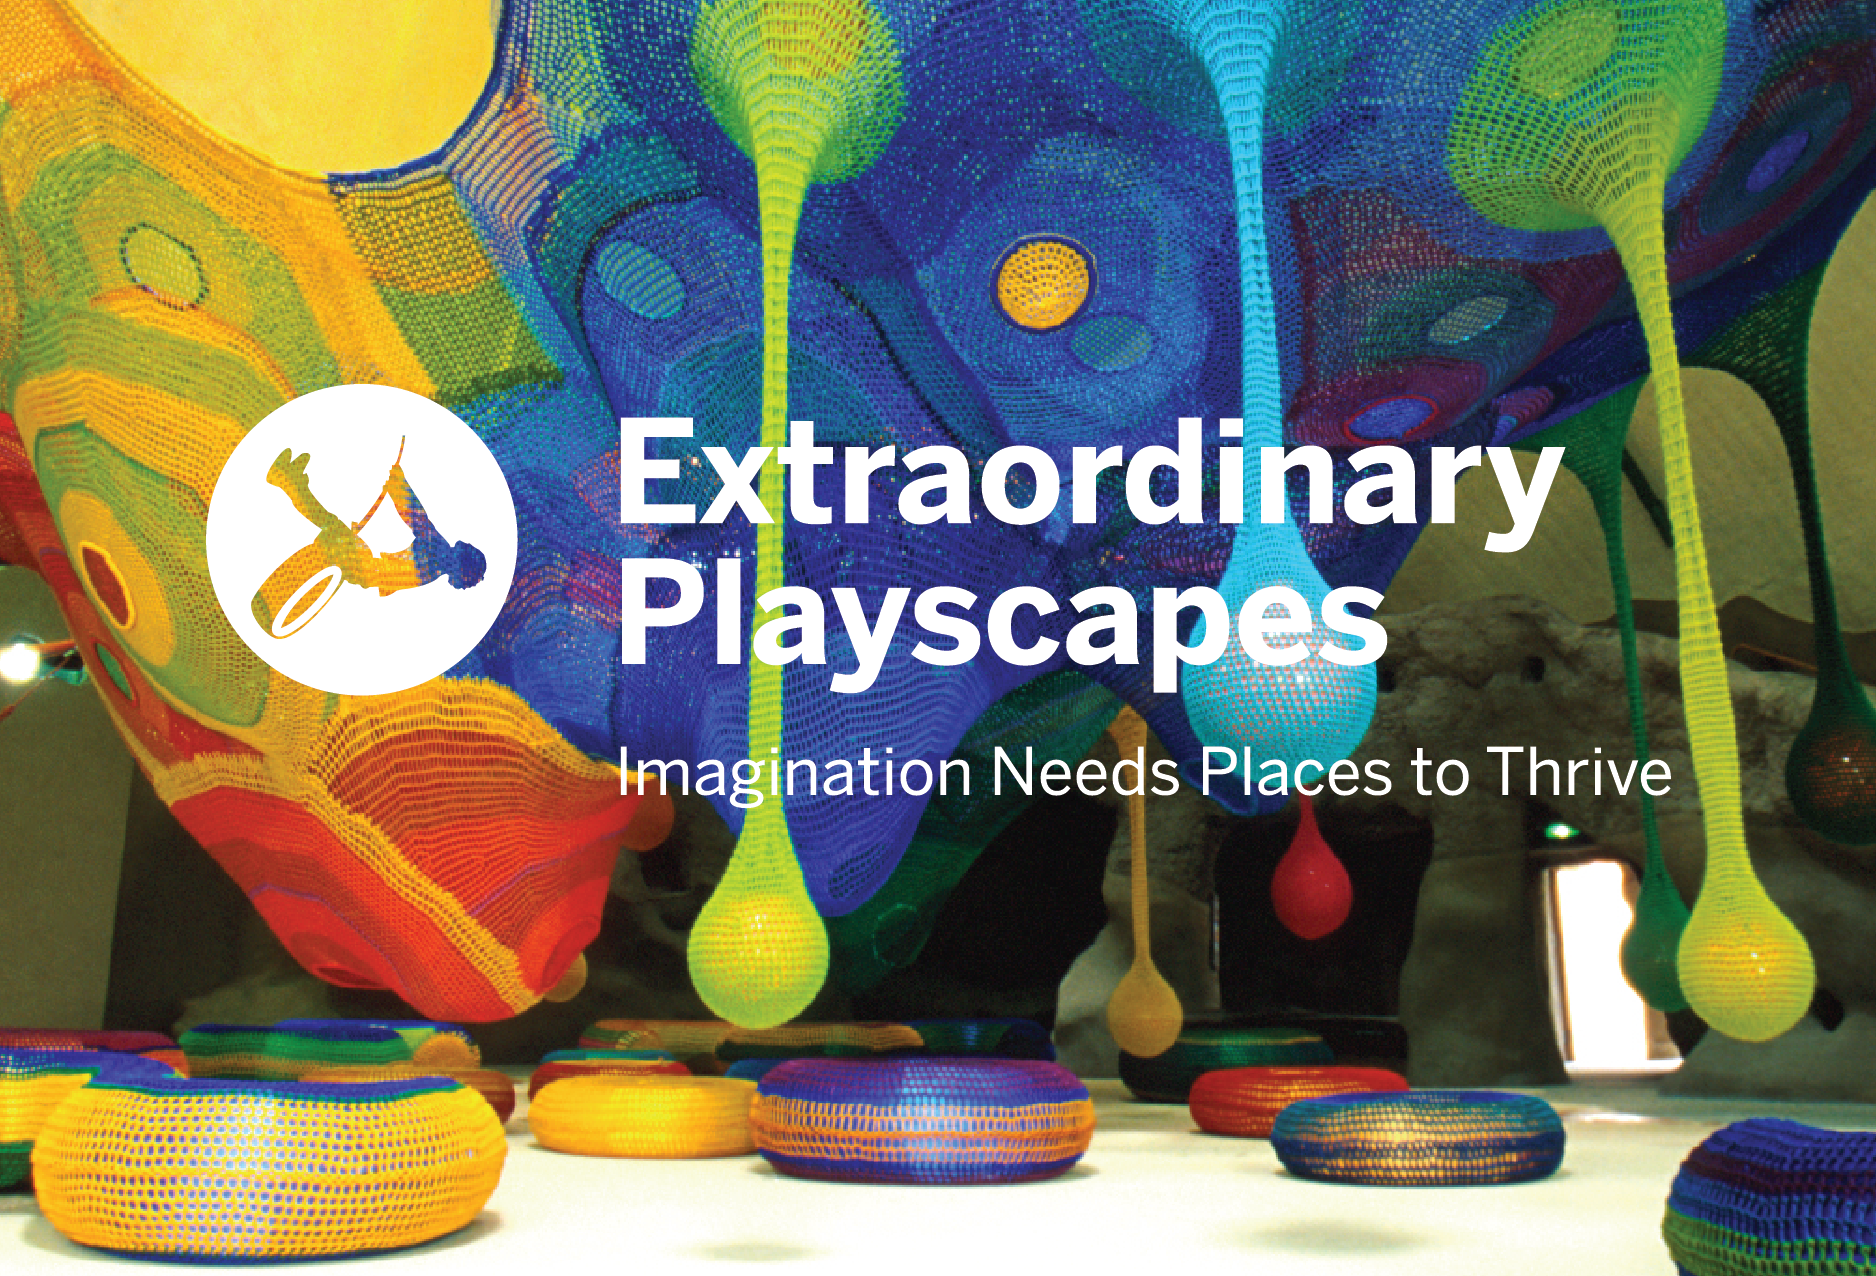 What we learn through play impacts our physical, mental, social, and creative health. Designers and play advocates are taking notice. Extraordinary Playscapes examines the art, history, science, and importance of play, while telling the story behind some of the most incredible play spaces in the world.